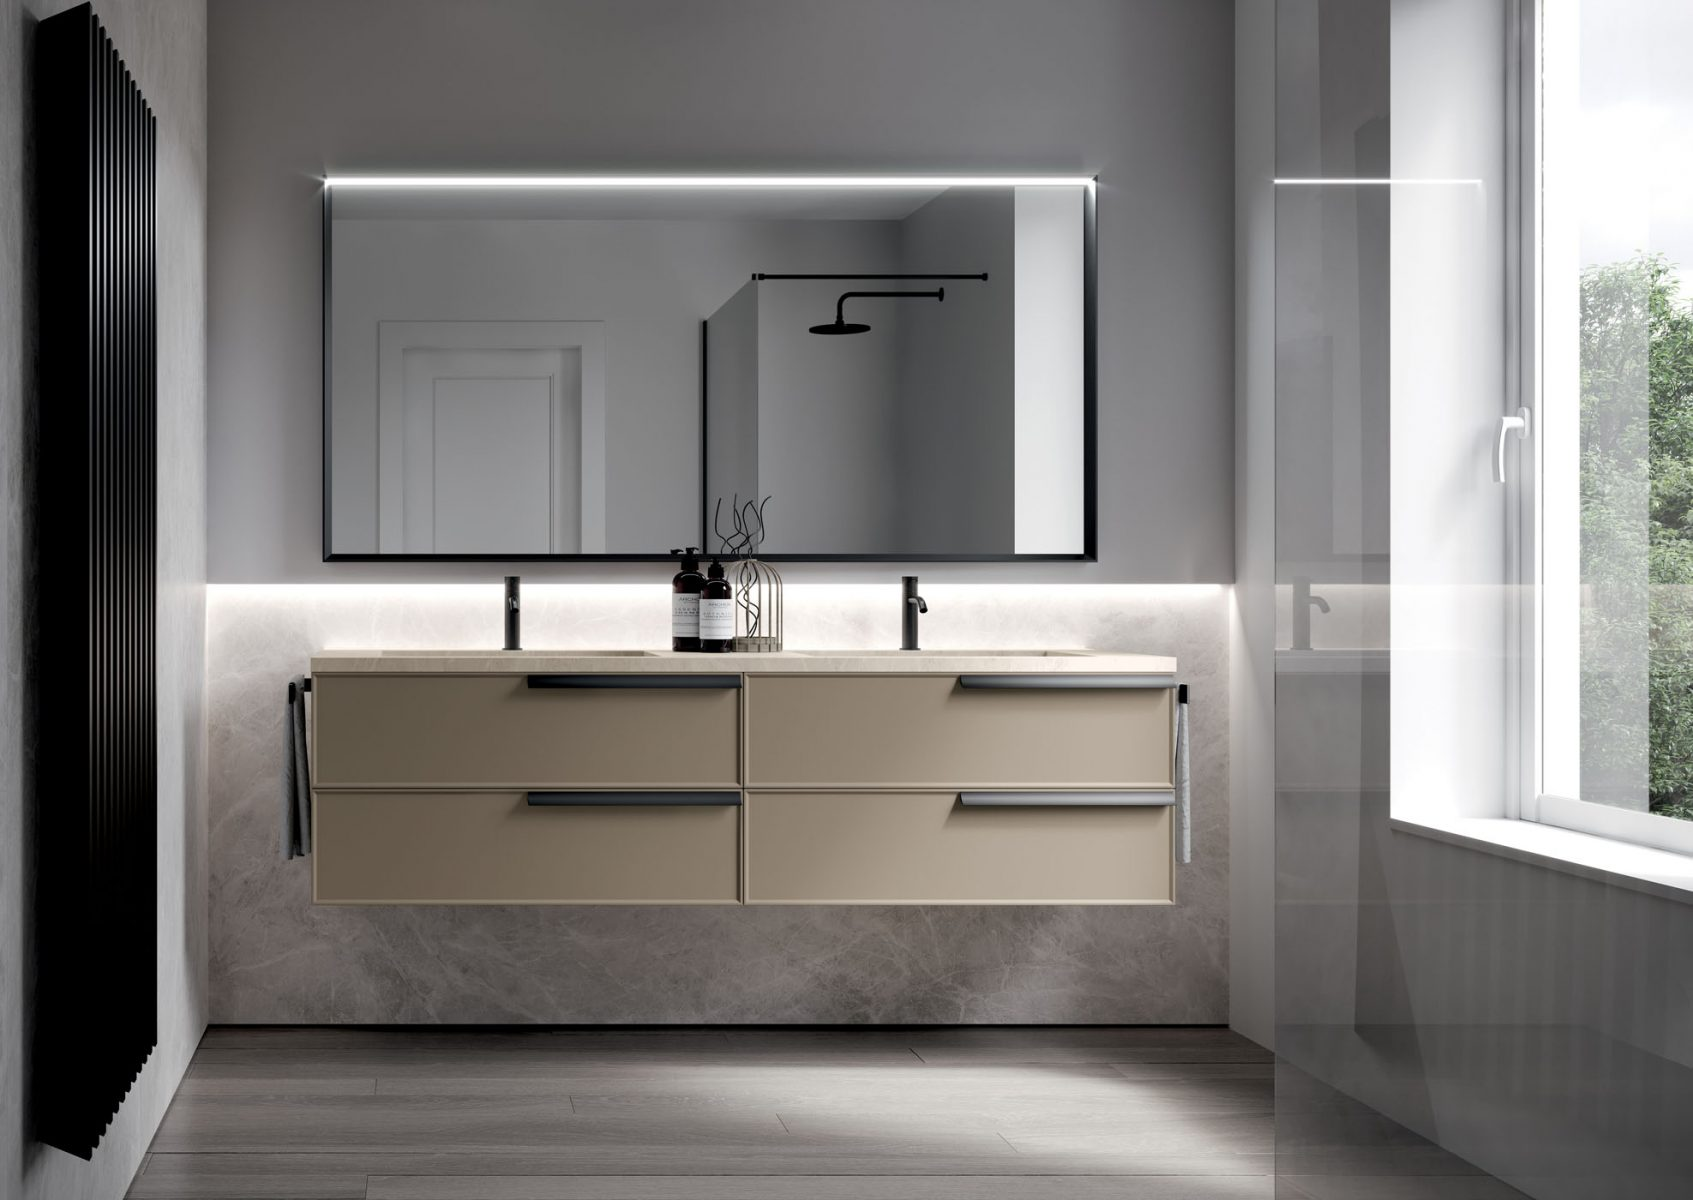 Piano Per Mobile Bagno form: floor-standing and suspended bathroom cabinets - ideagroup